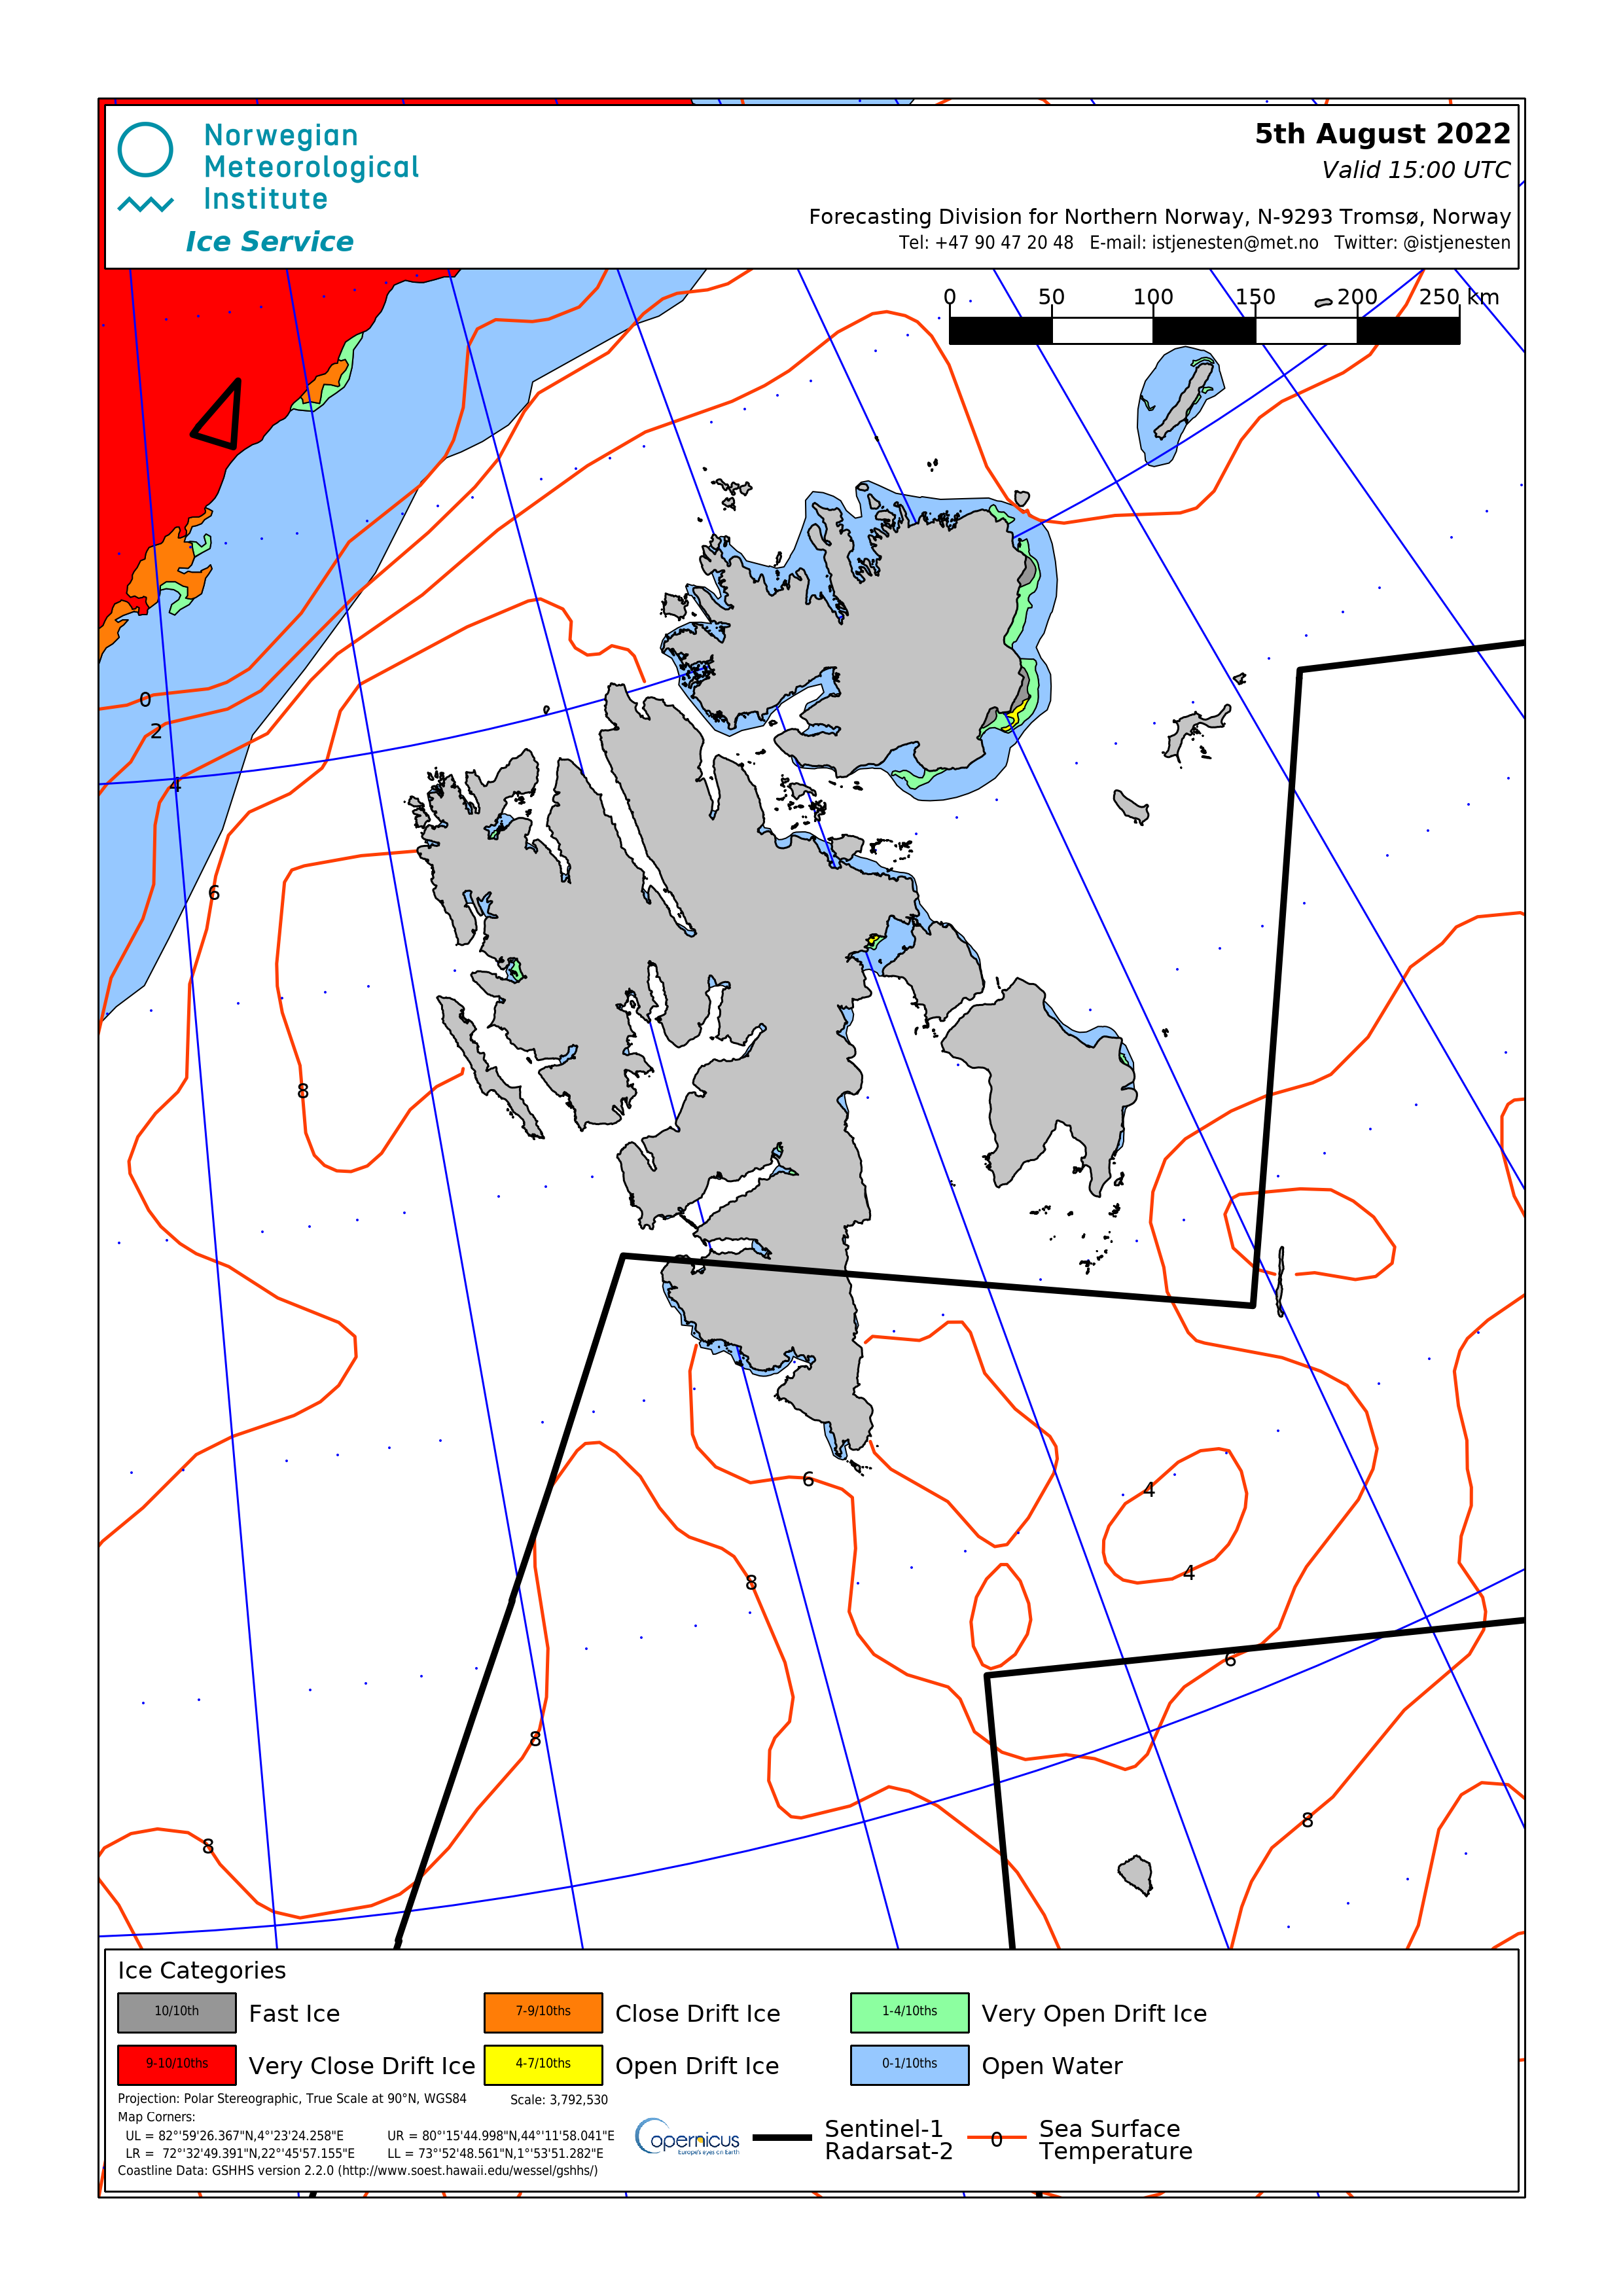 An overview of the sea ice situation at Svalbard